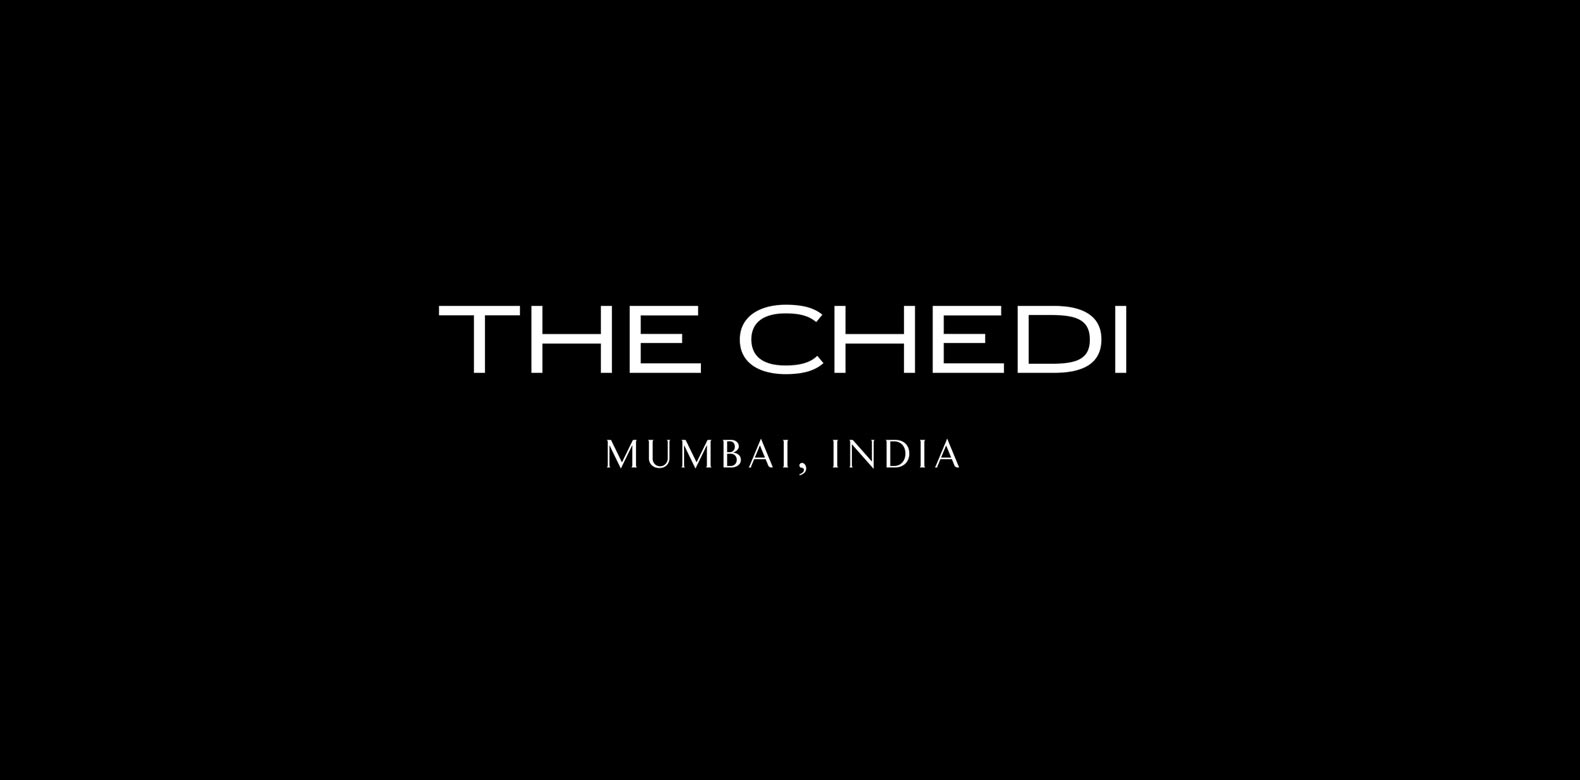 GHM-Dev-The-Chedi-Mumbai-Logo-Black1